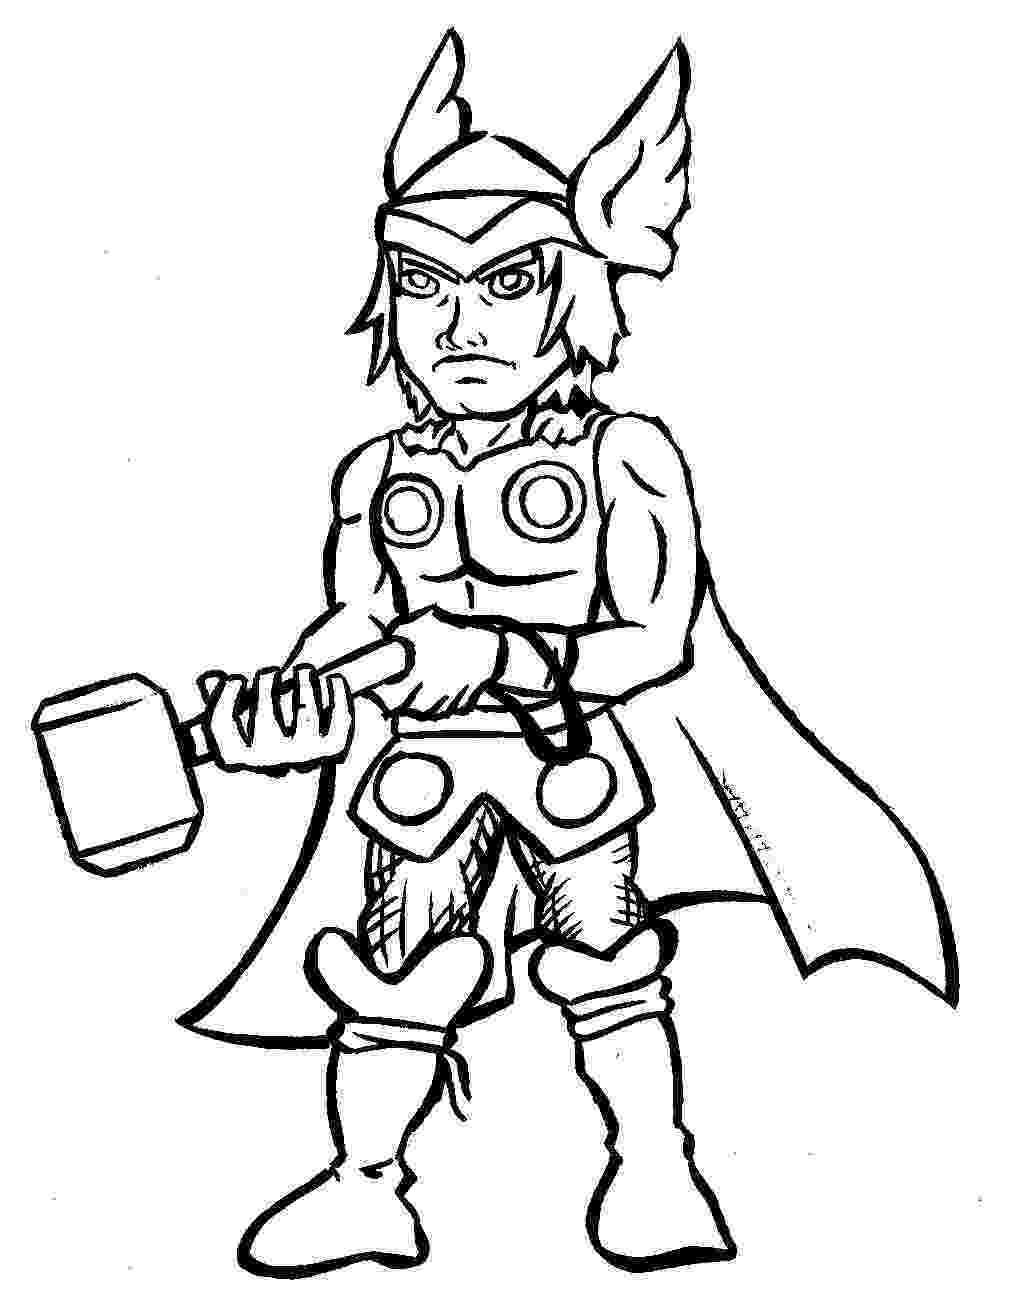 thor colouring pictures free printable thor coloring pages for kids colouring pictures thor